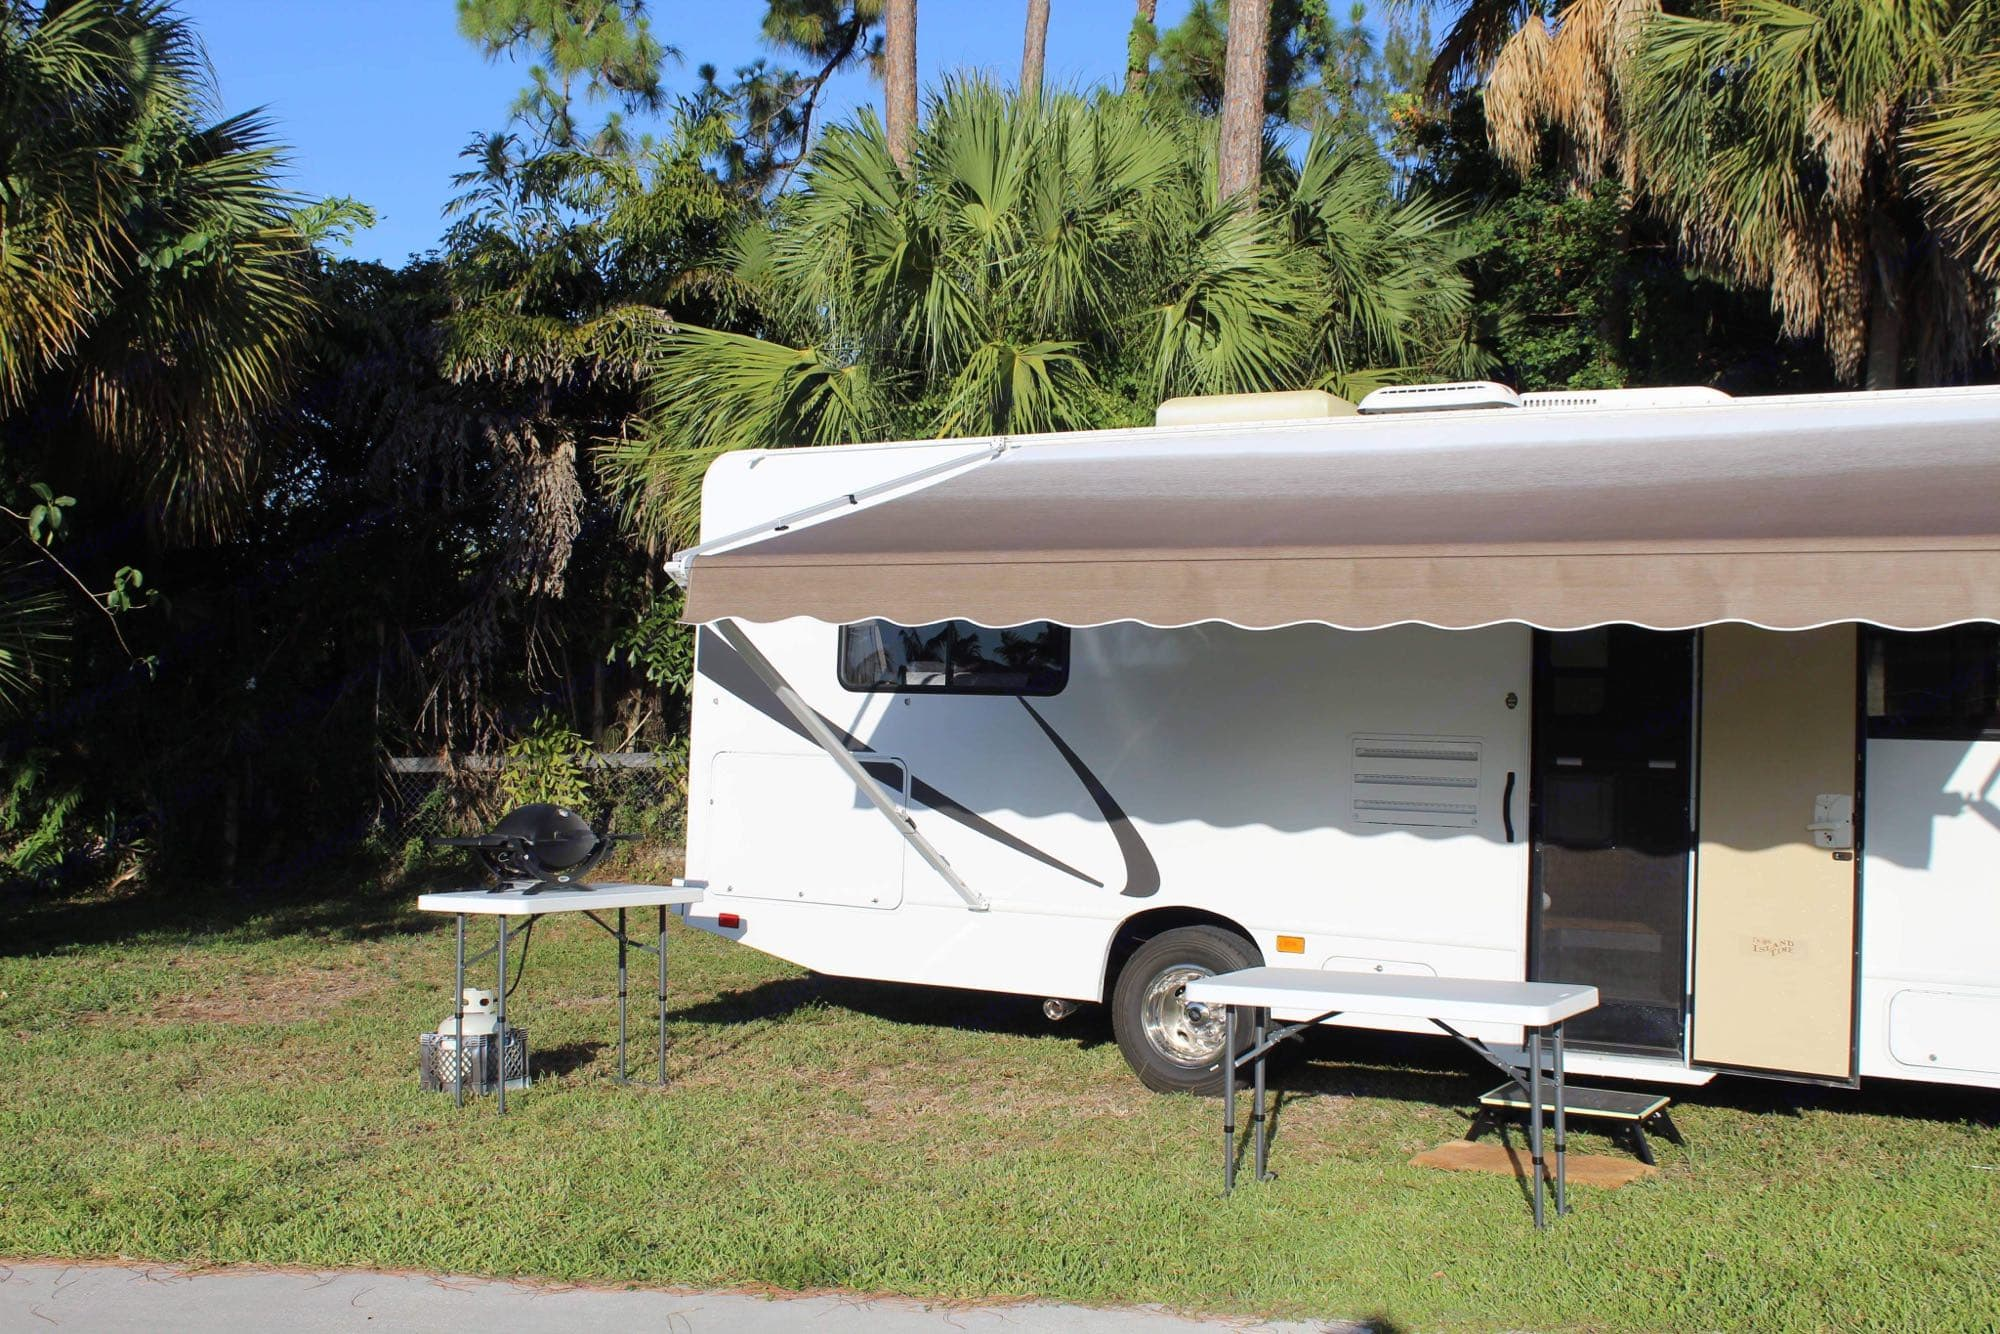 Tables and Bbq with propane are included. Thor Motor Coach Four Winds Majestic 2015